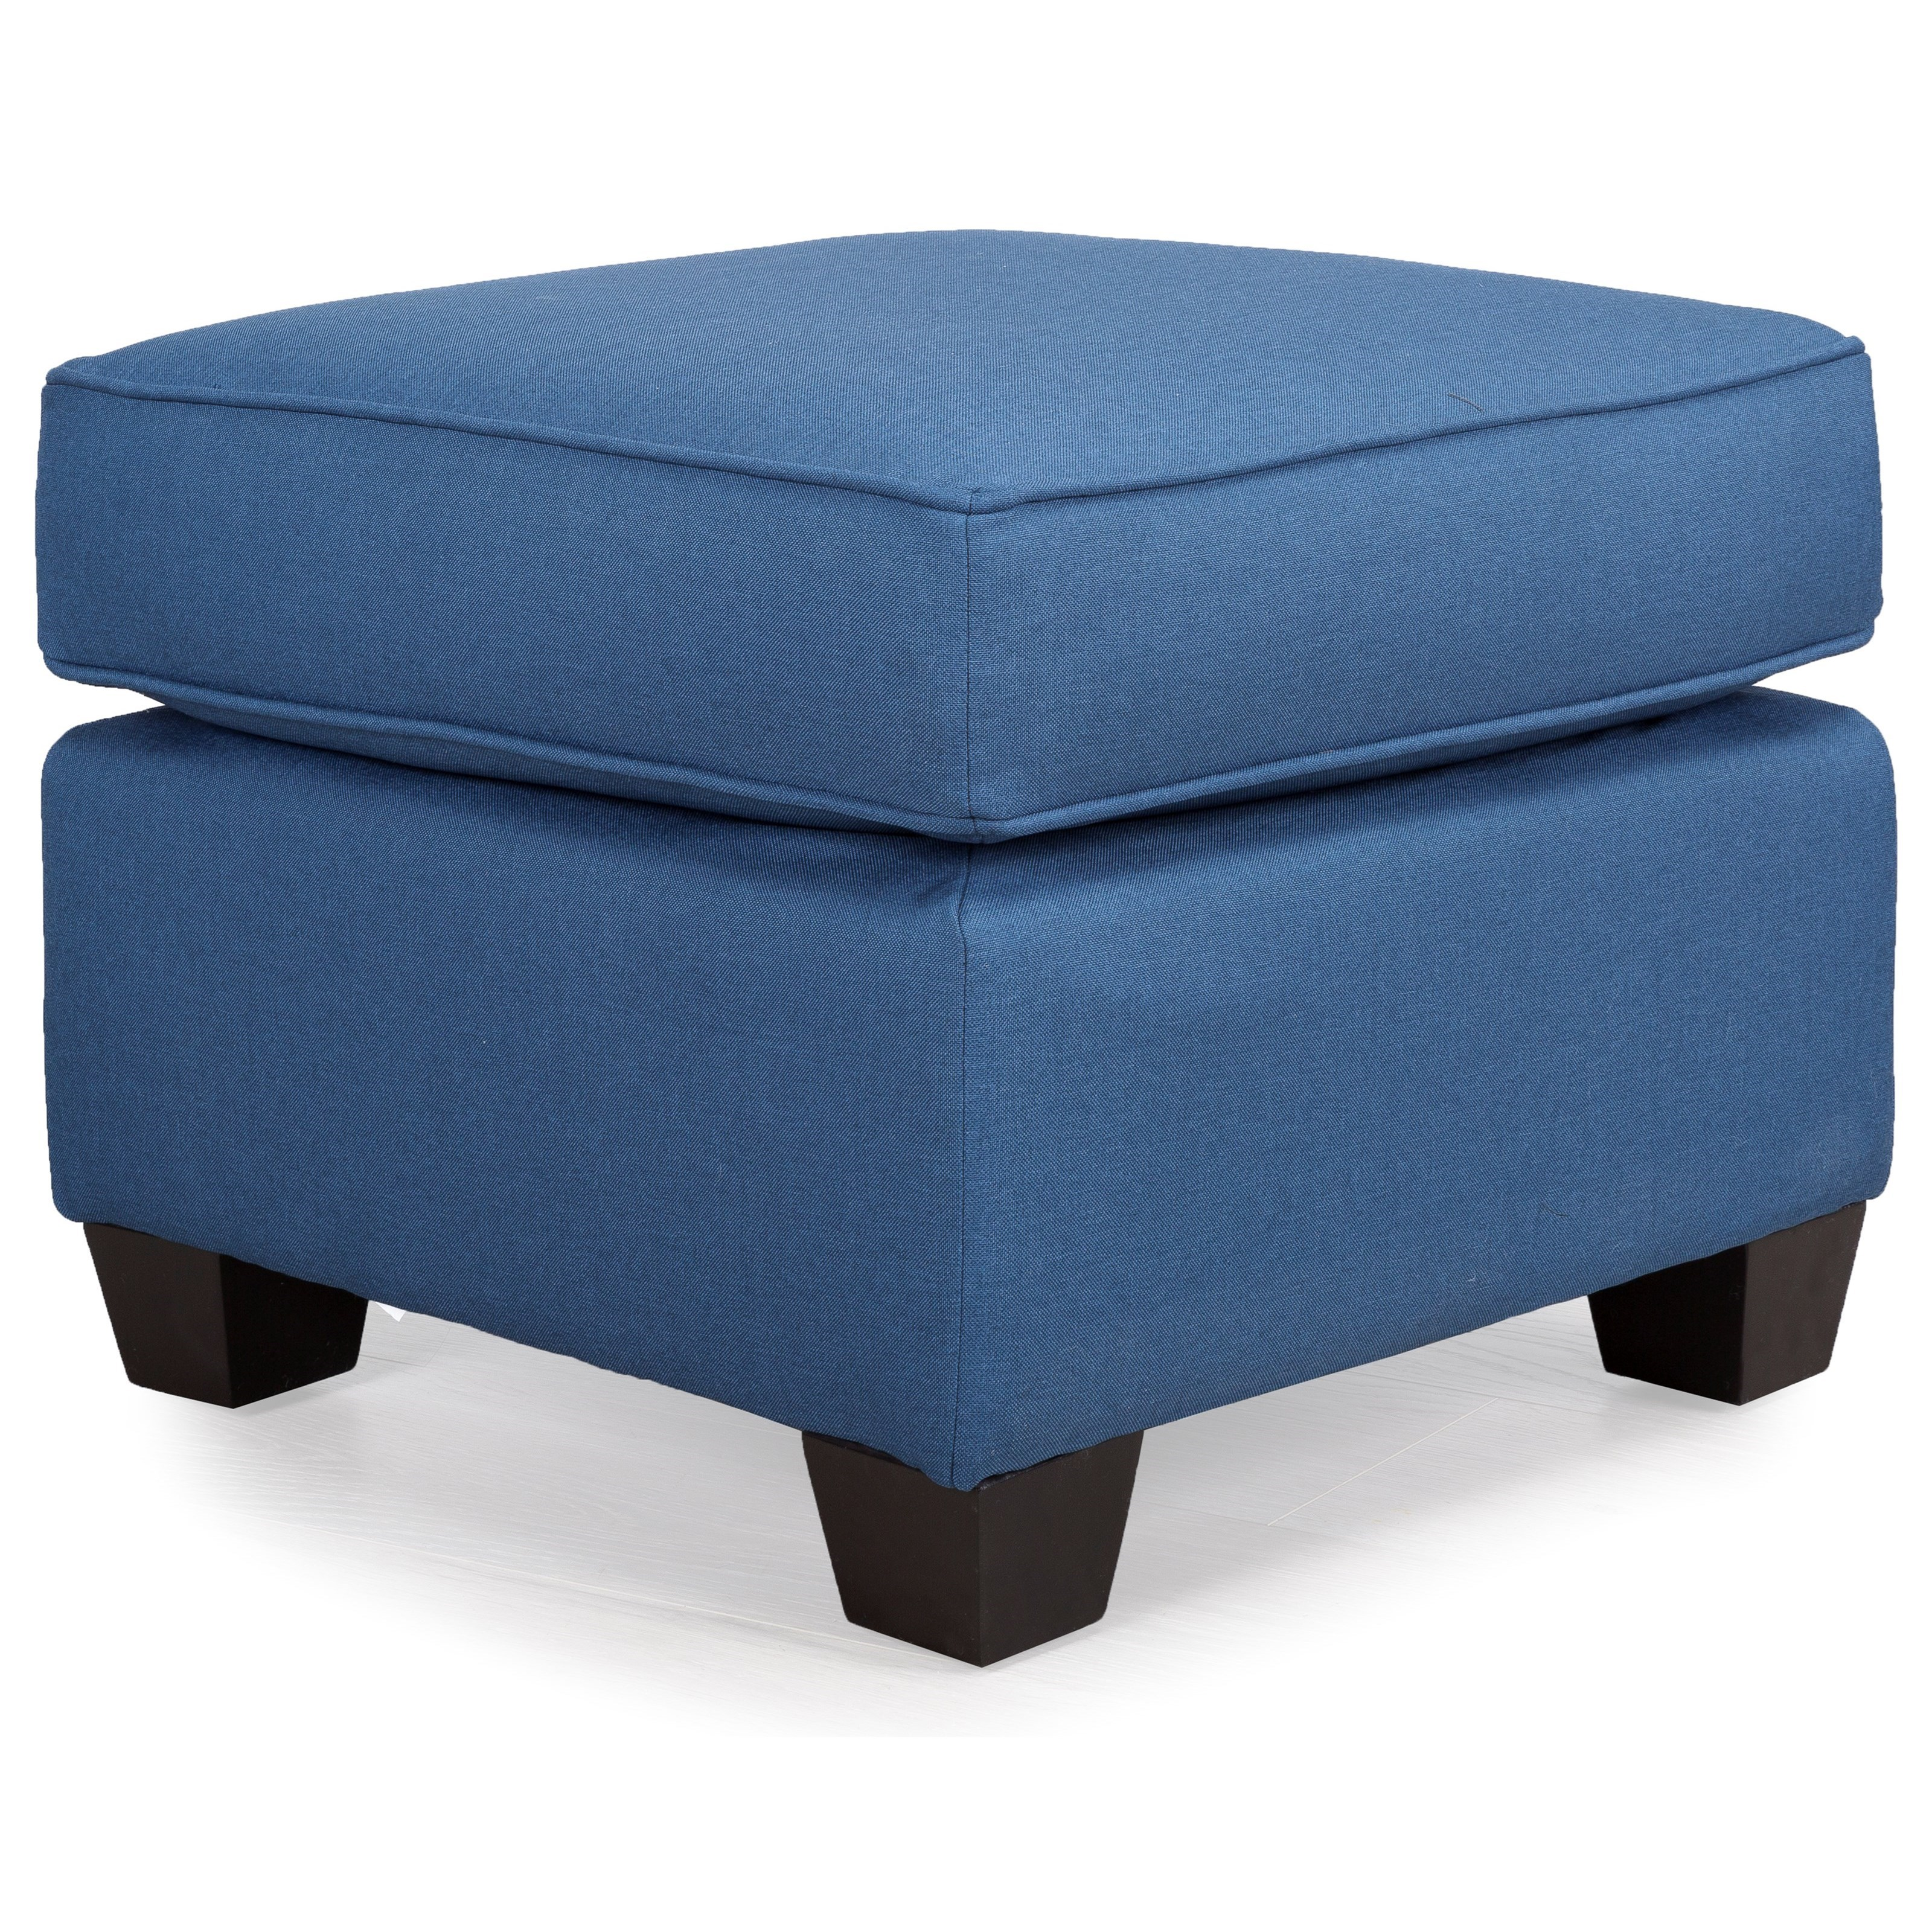 2855 Ottoman by Decor-Rest at Reid's Furniture